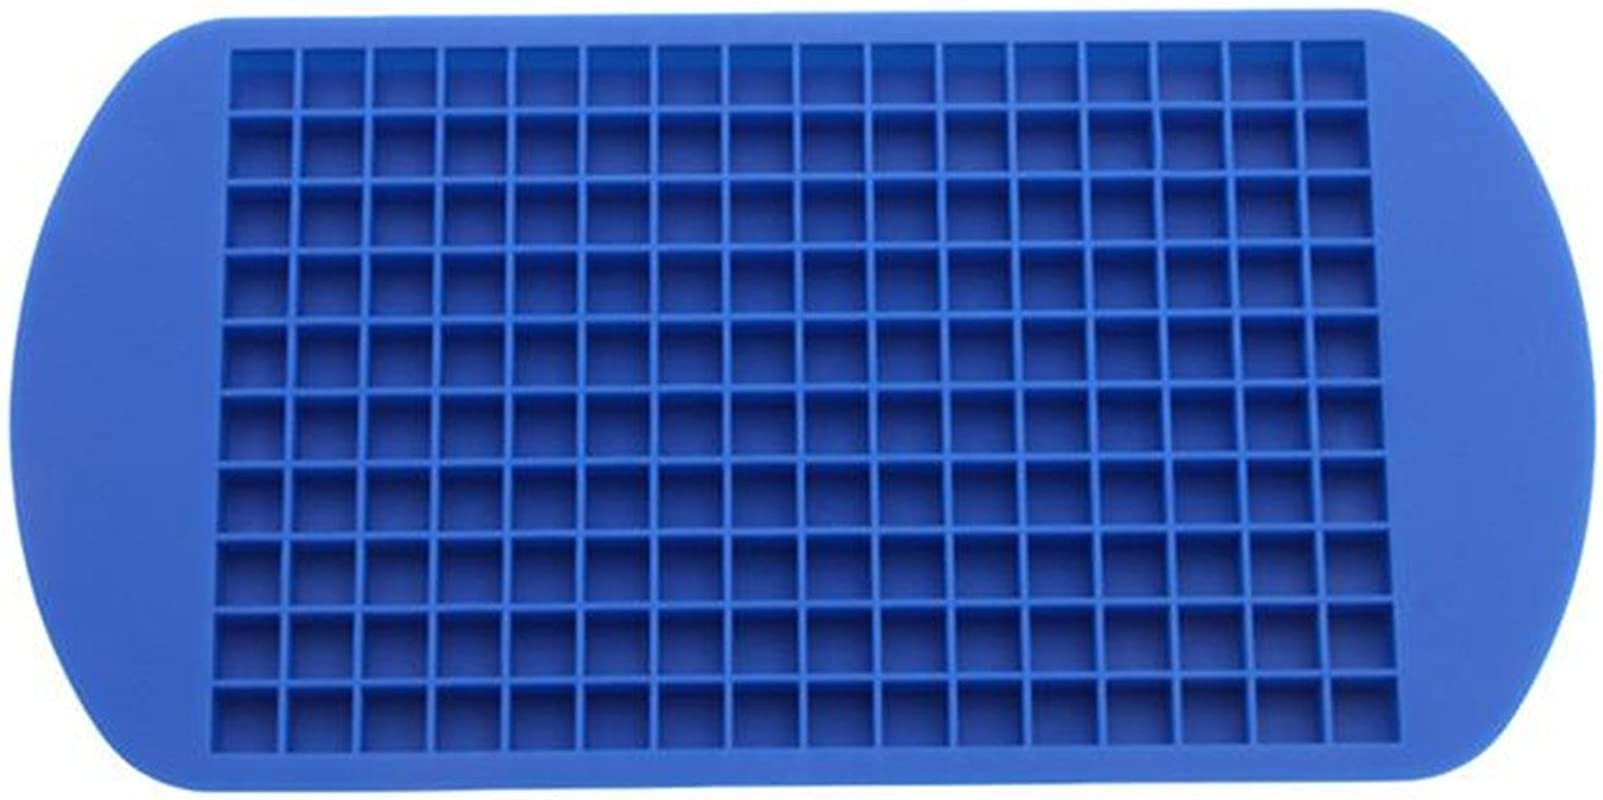 HENGSONG 160 Mini Small Silicone Ice Mold Cube Tray Ice Box Ball Maker DIY Mold For Kids Blue